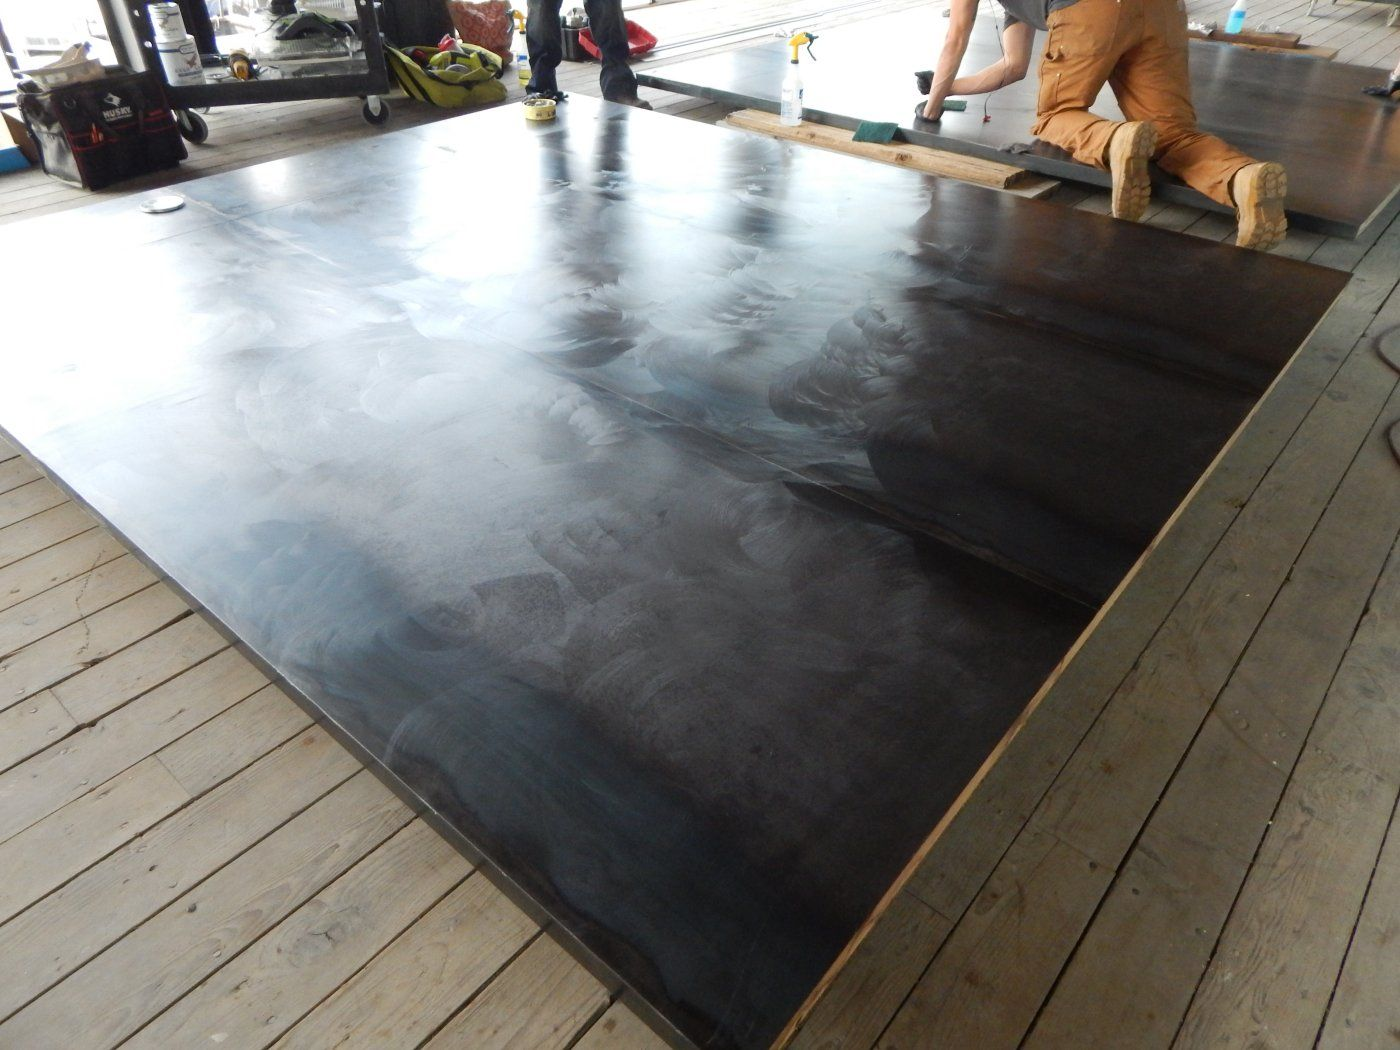 Large Hot Rolled Steel Panels Being Finished For Installation In Winery Steel Panels Steel Wall Steel Fabrication